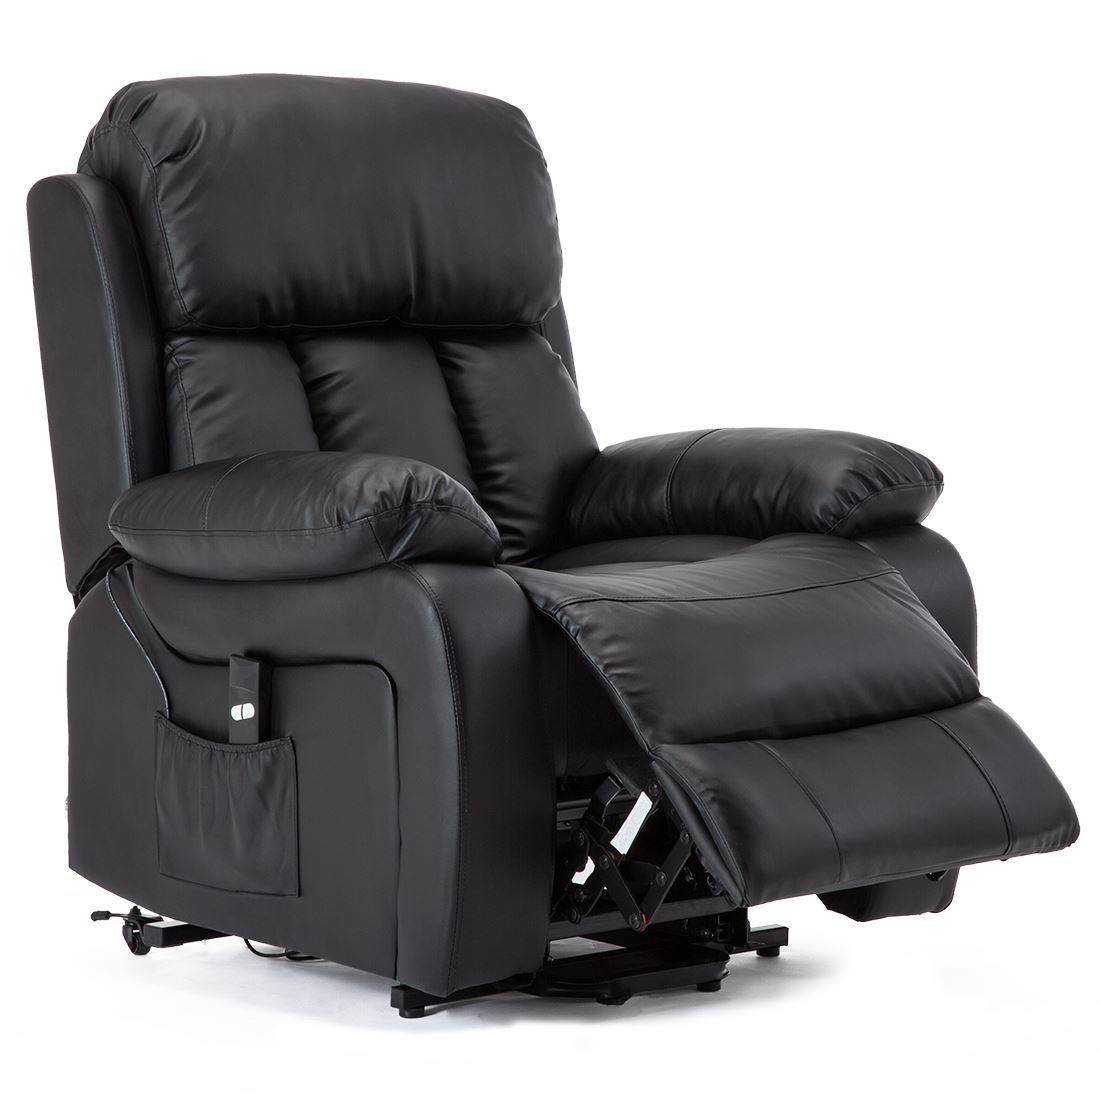 CHESTER-ELECTRIC-RISE-LEATHER-RECLINER-POWER-ARMCHAIR-HEATED-MASSAGE-SOFA-CHAIR thumbnail 6